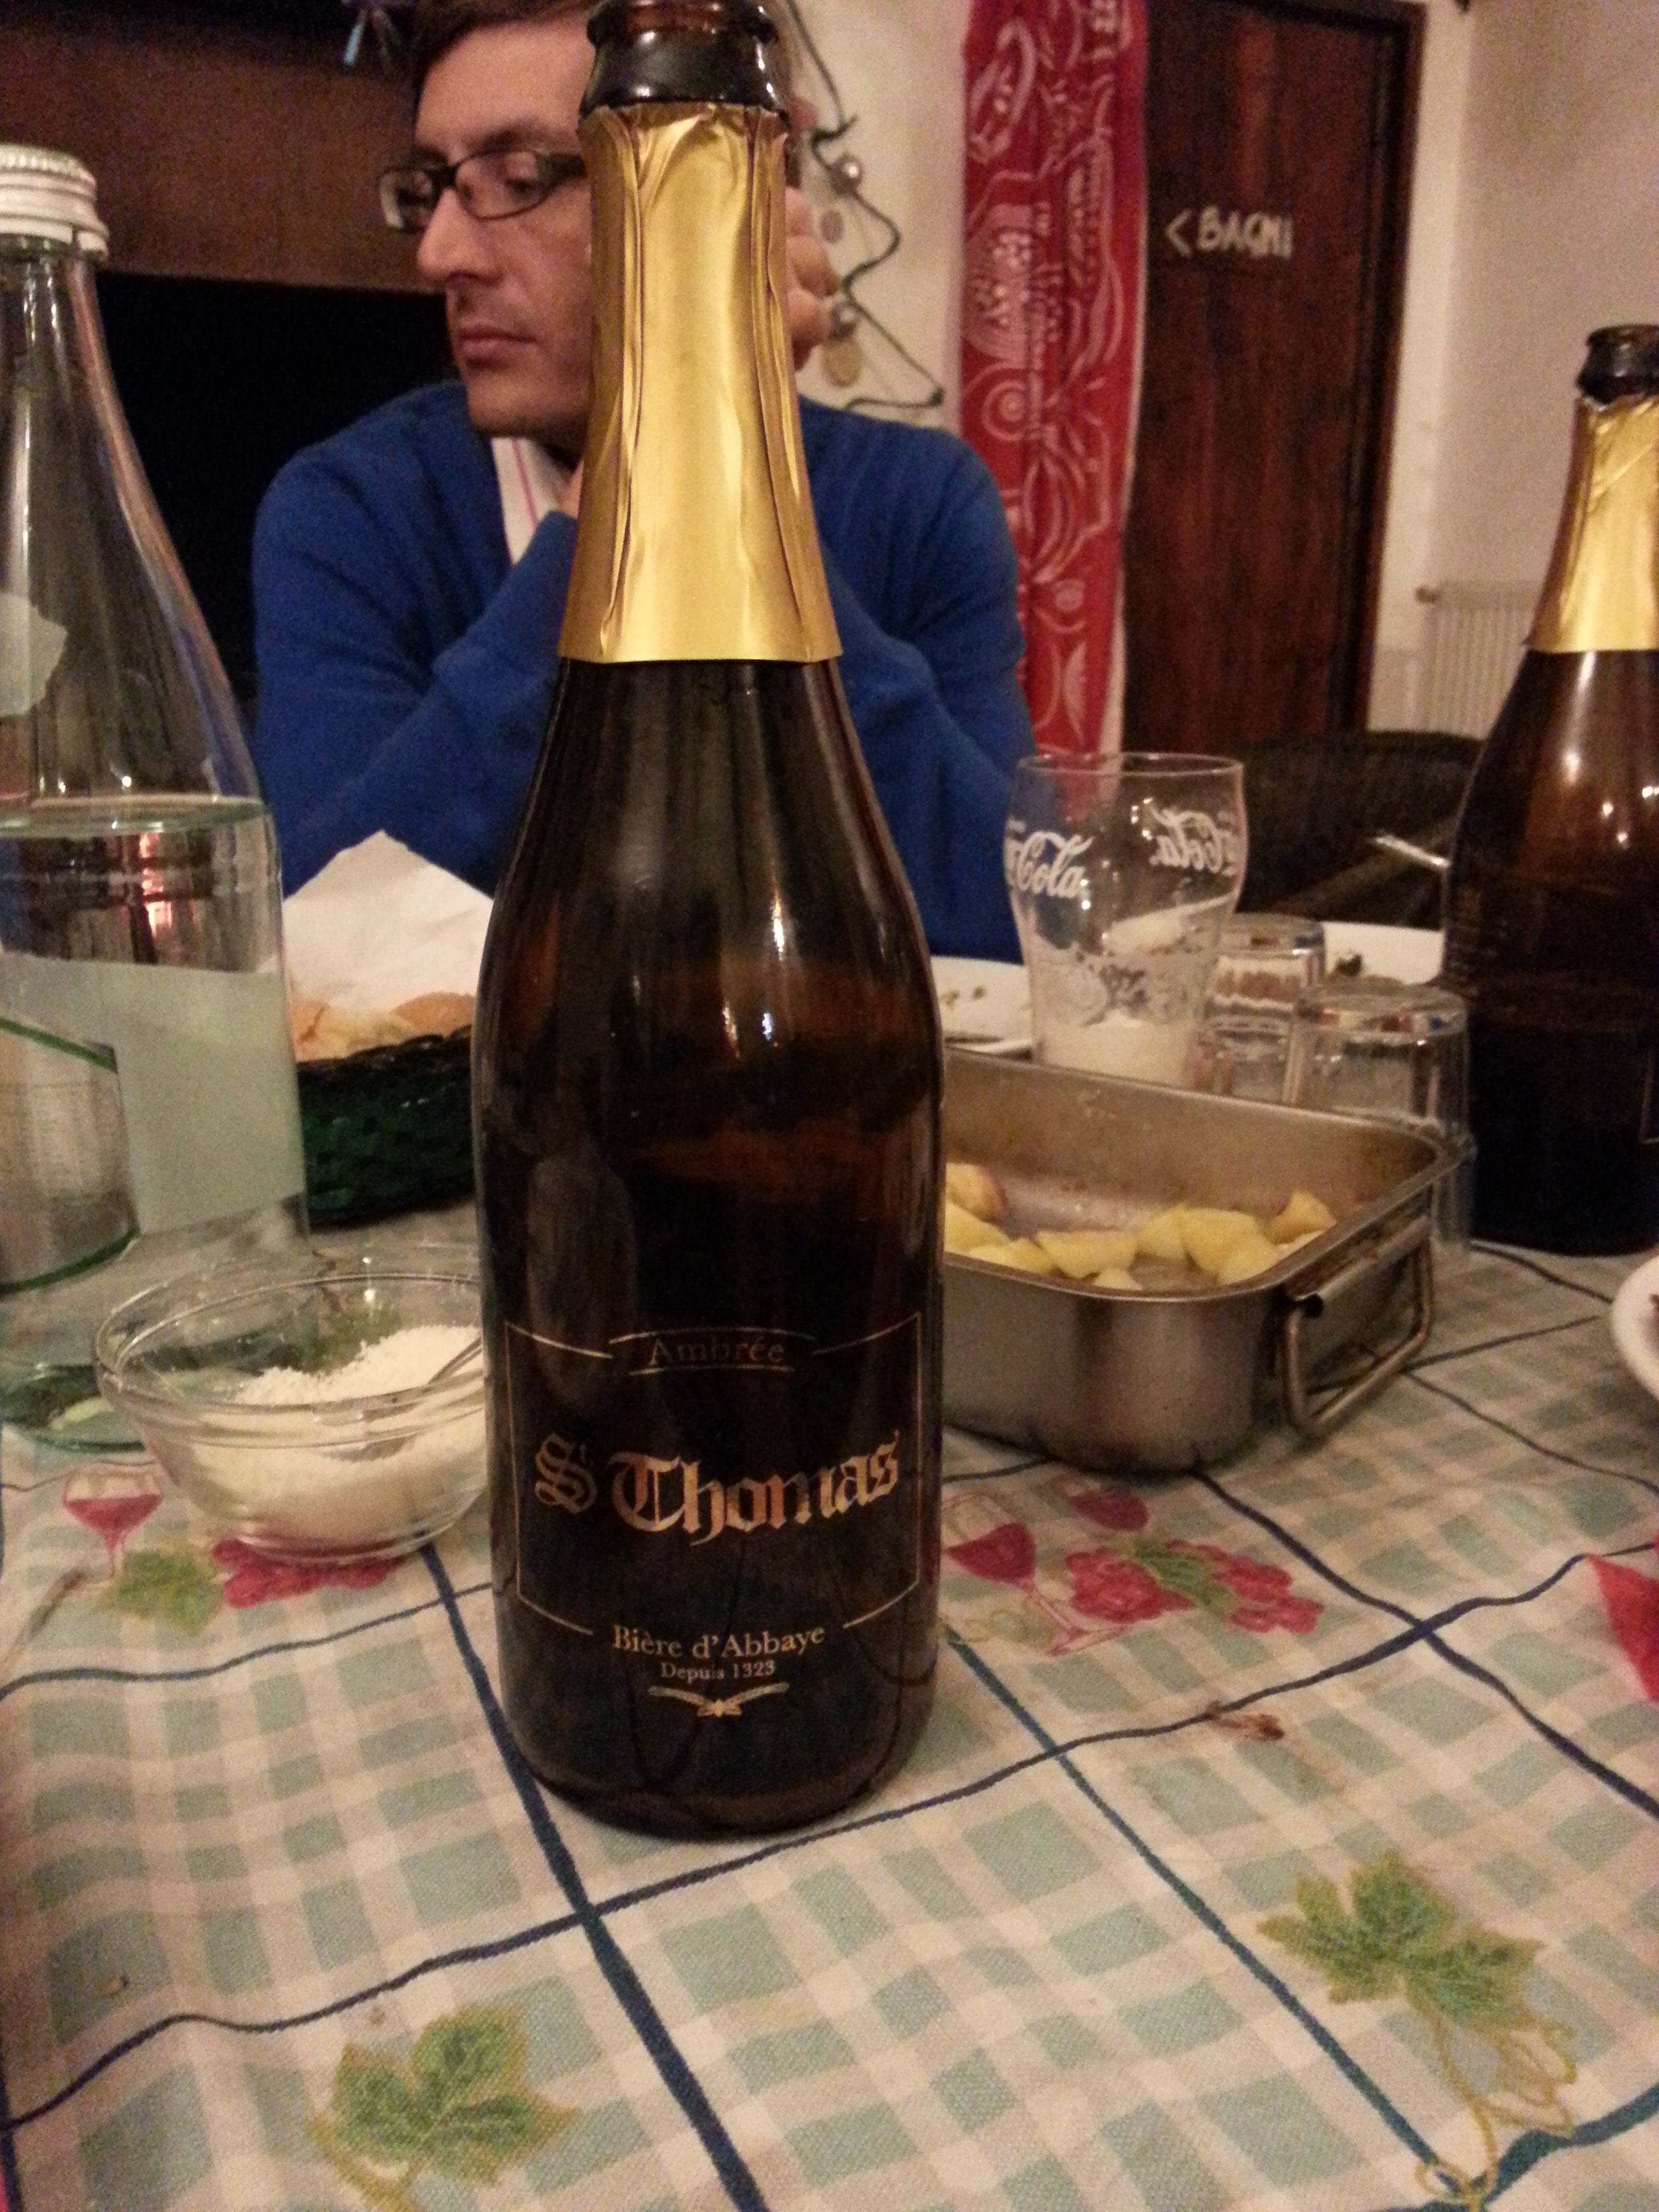 St. Thomas Beer from Belgium. You can find this in Rome. Very good beer!